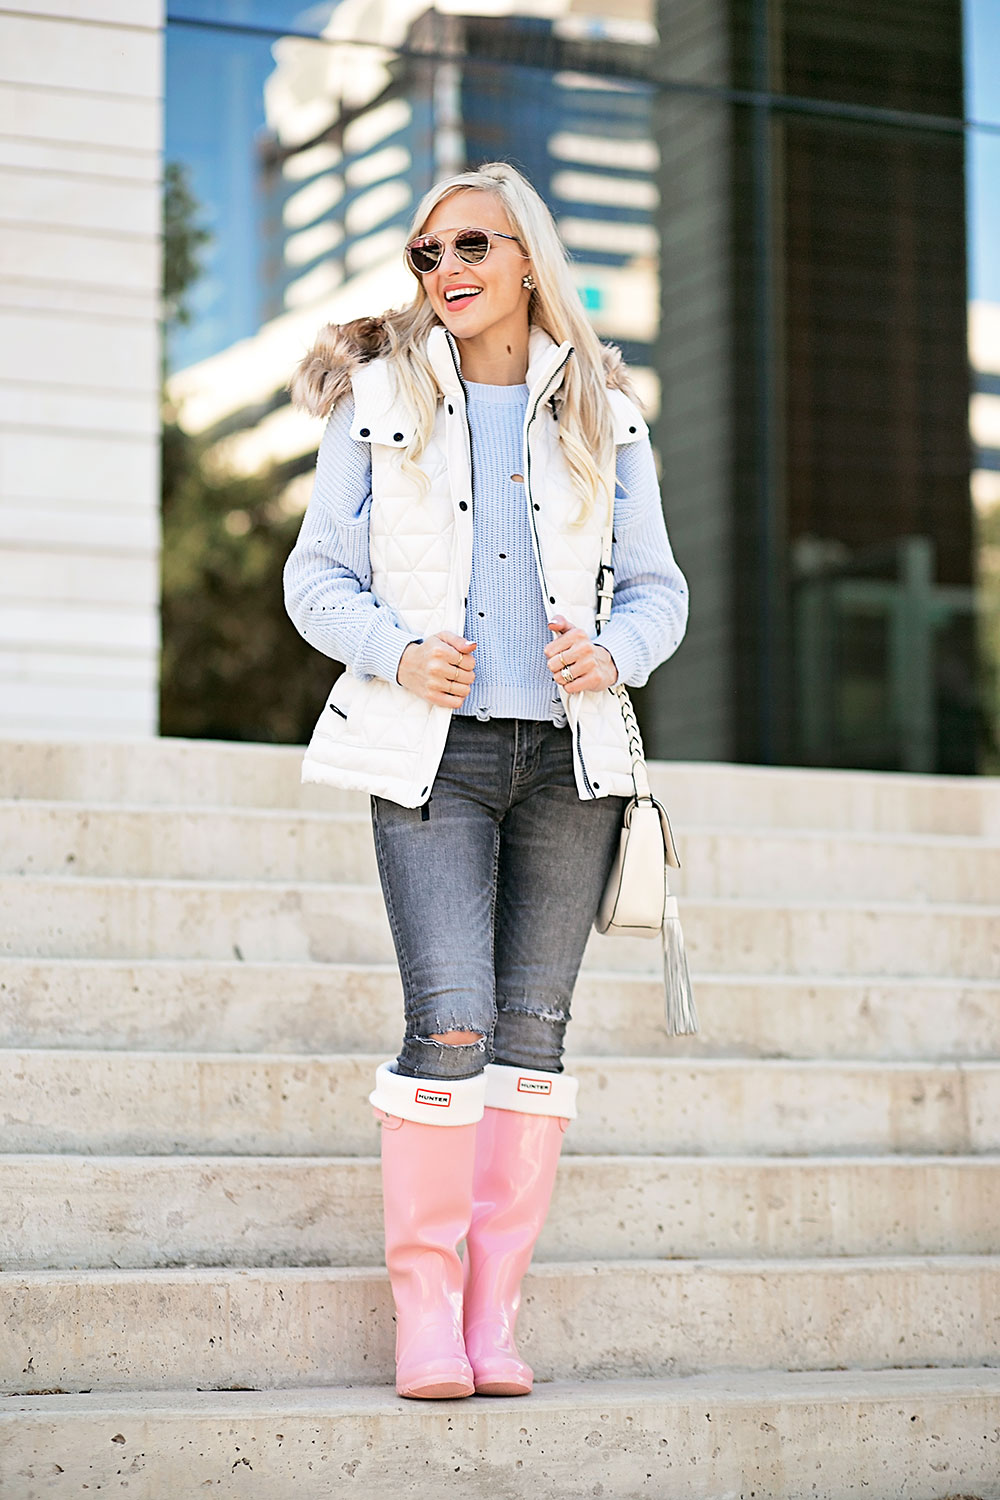 My Must Have Clothing And Accessories For Winter